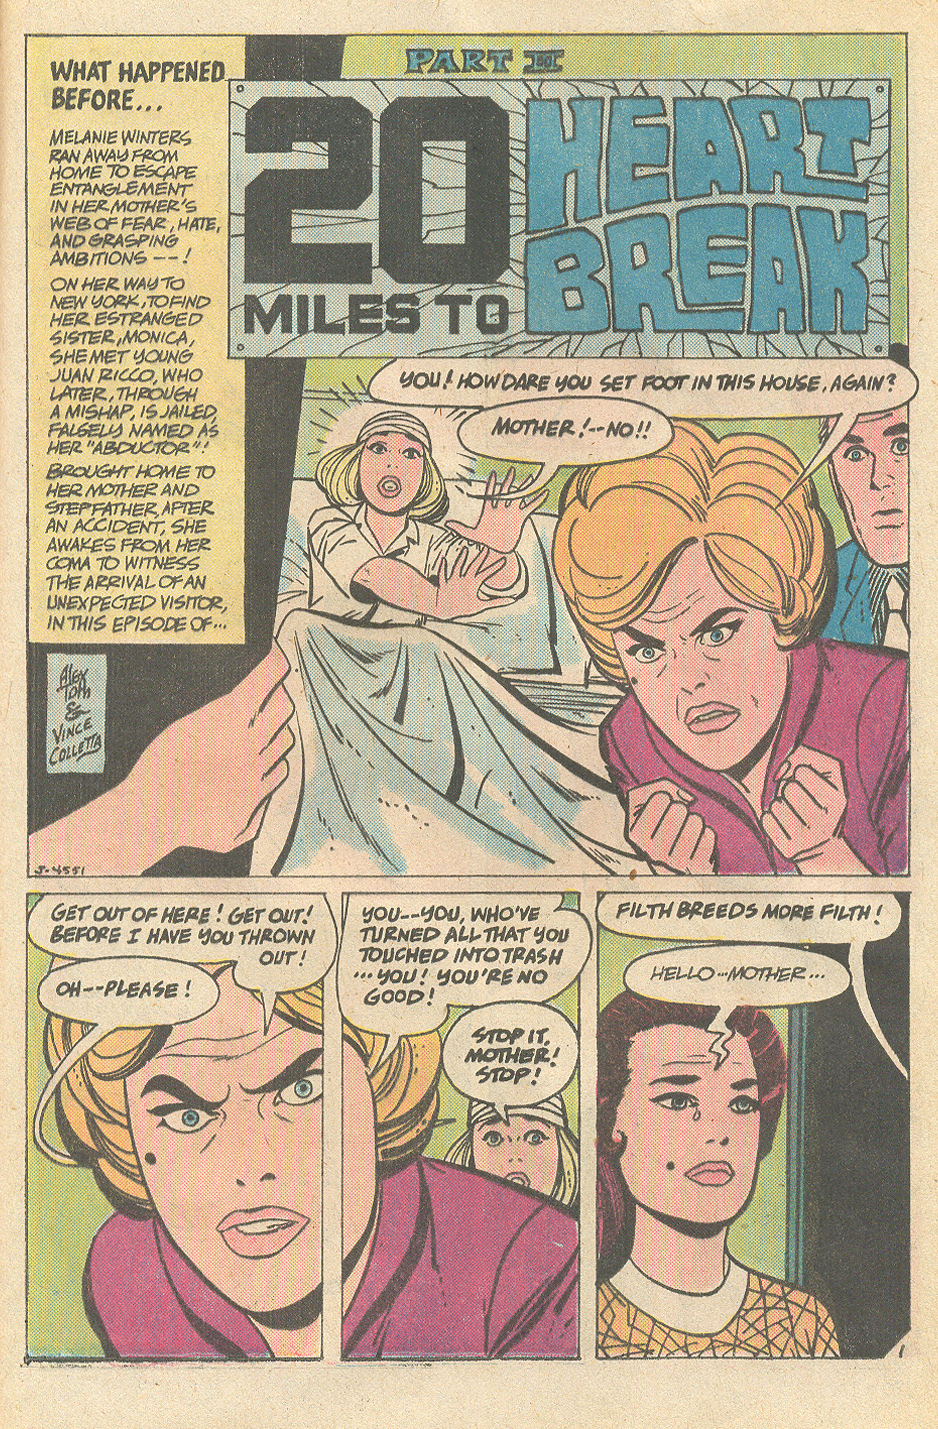 On the splash page of the third   episode   it is revealed that the uninvited stranger is none other than Melanie's sister, Monica!